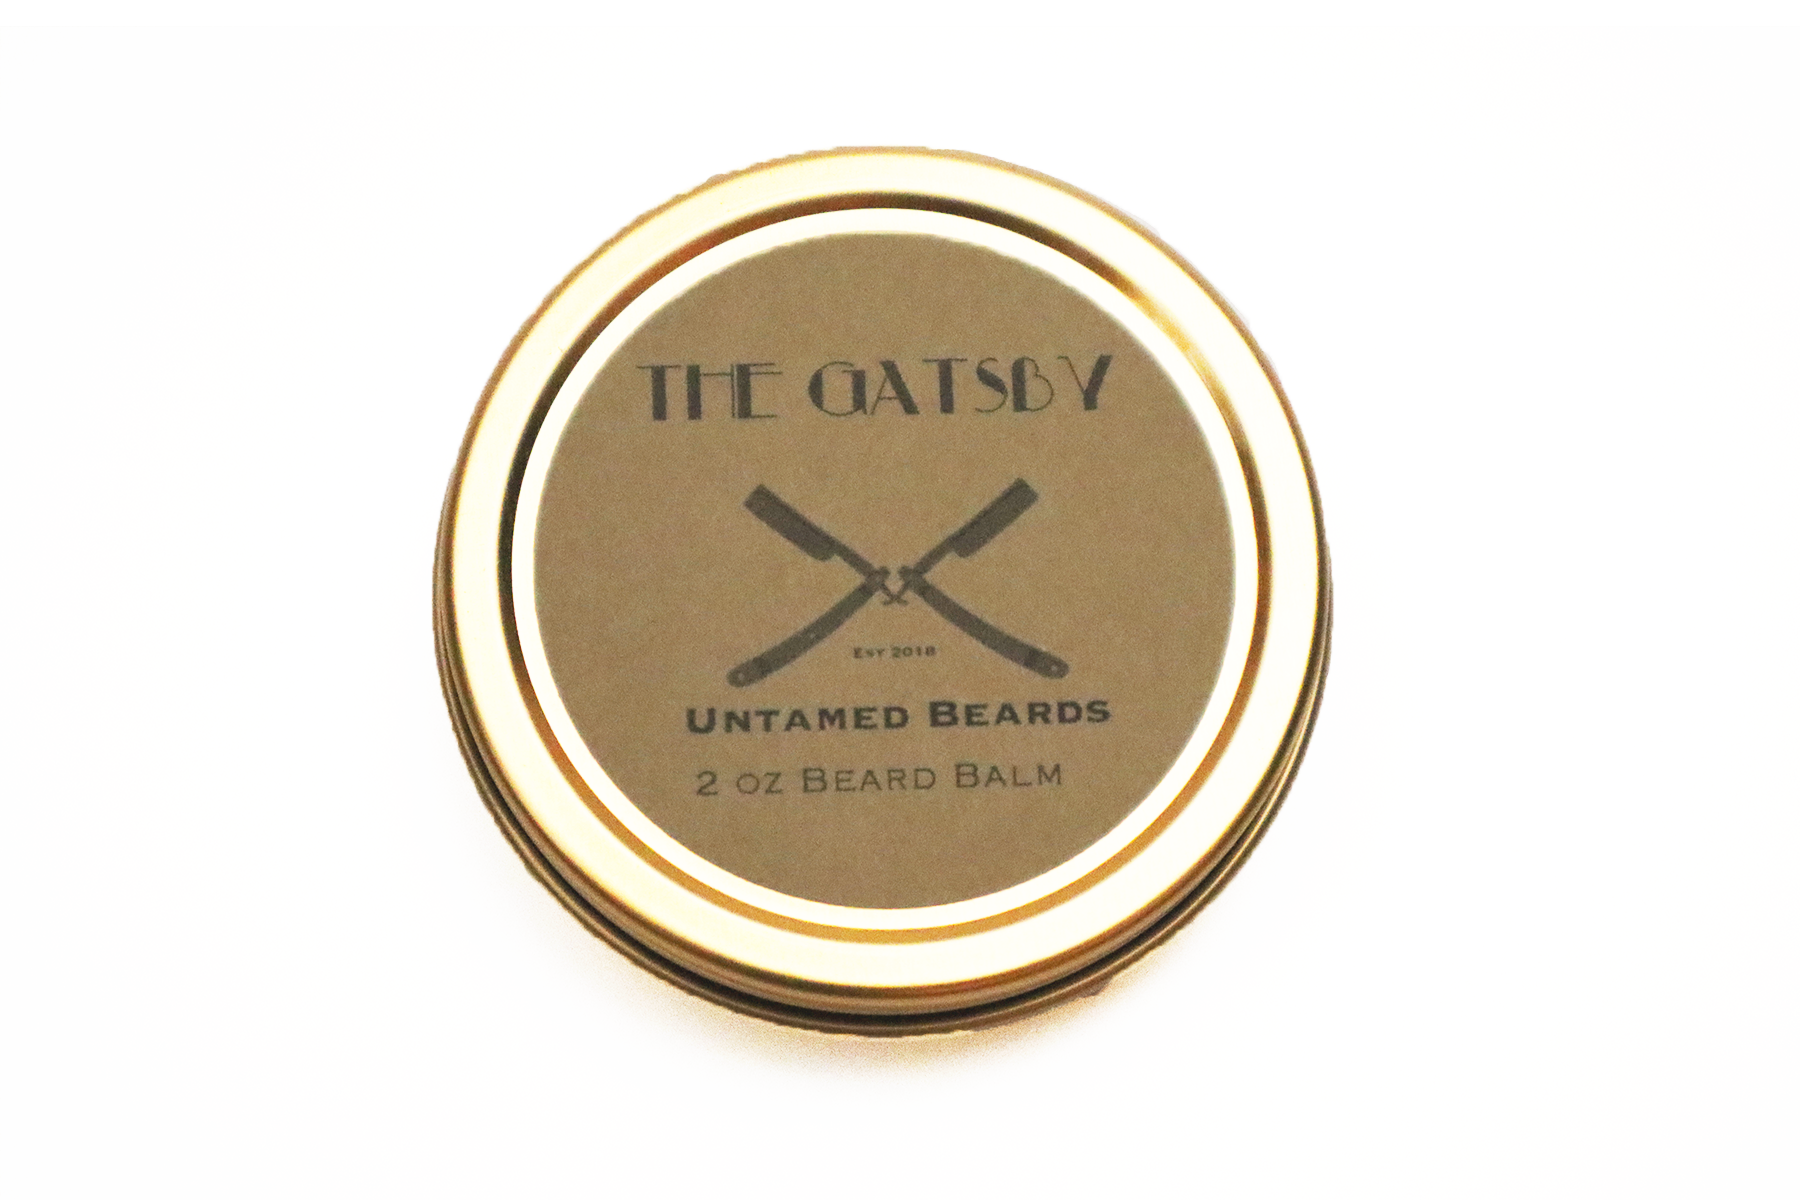 The Gatsby Beard Balm